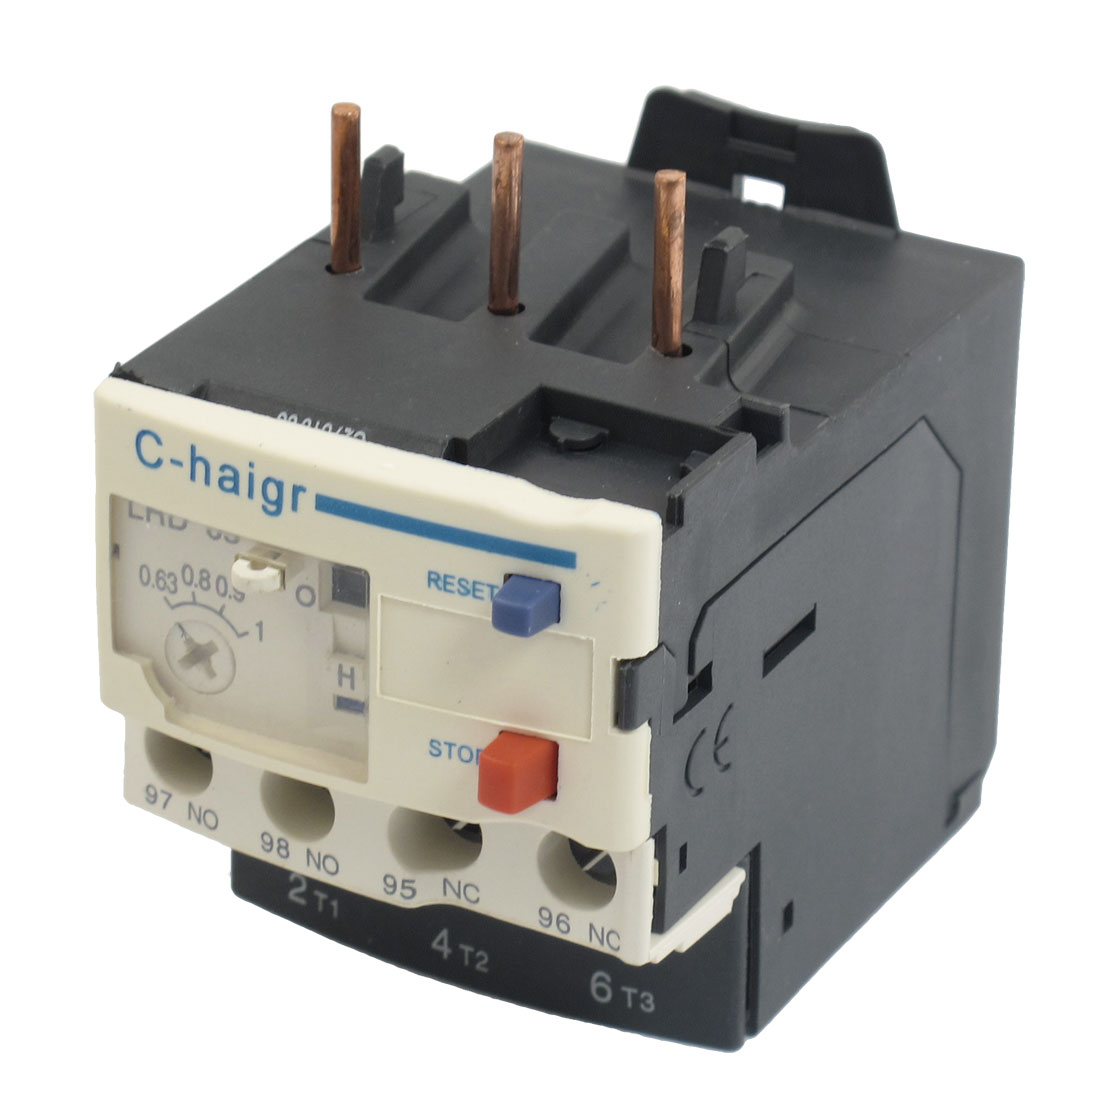 3 Pole AC 0.63A - 1A Electric Thermal Overload Relay 1 NO 1 NC